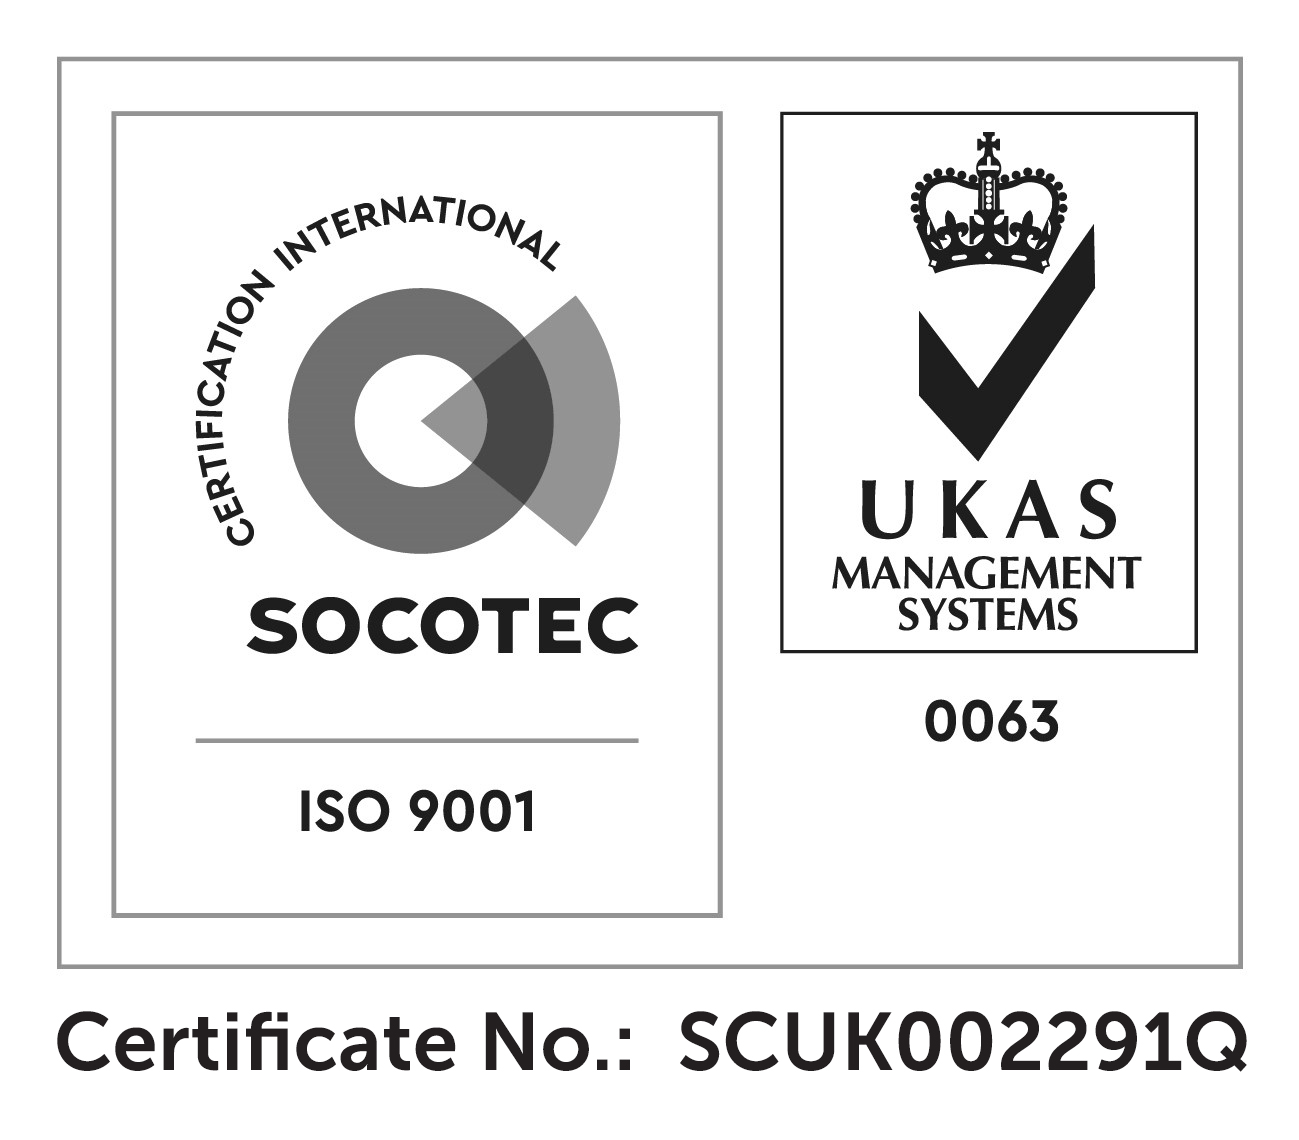 ISO Certificate Number SCUK002291Q